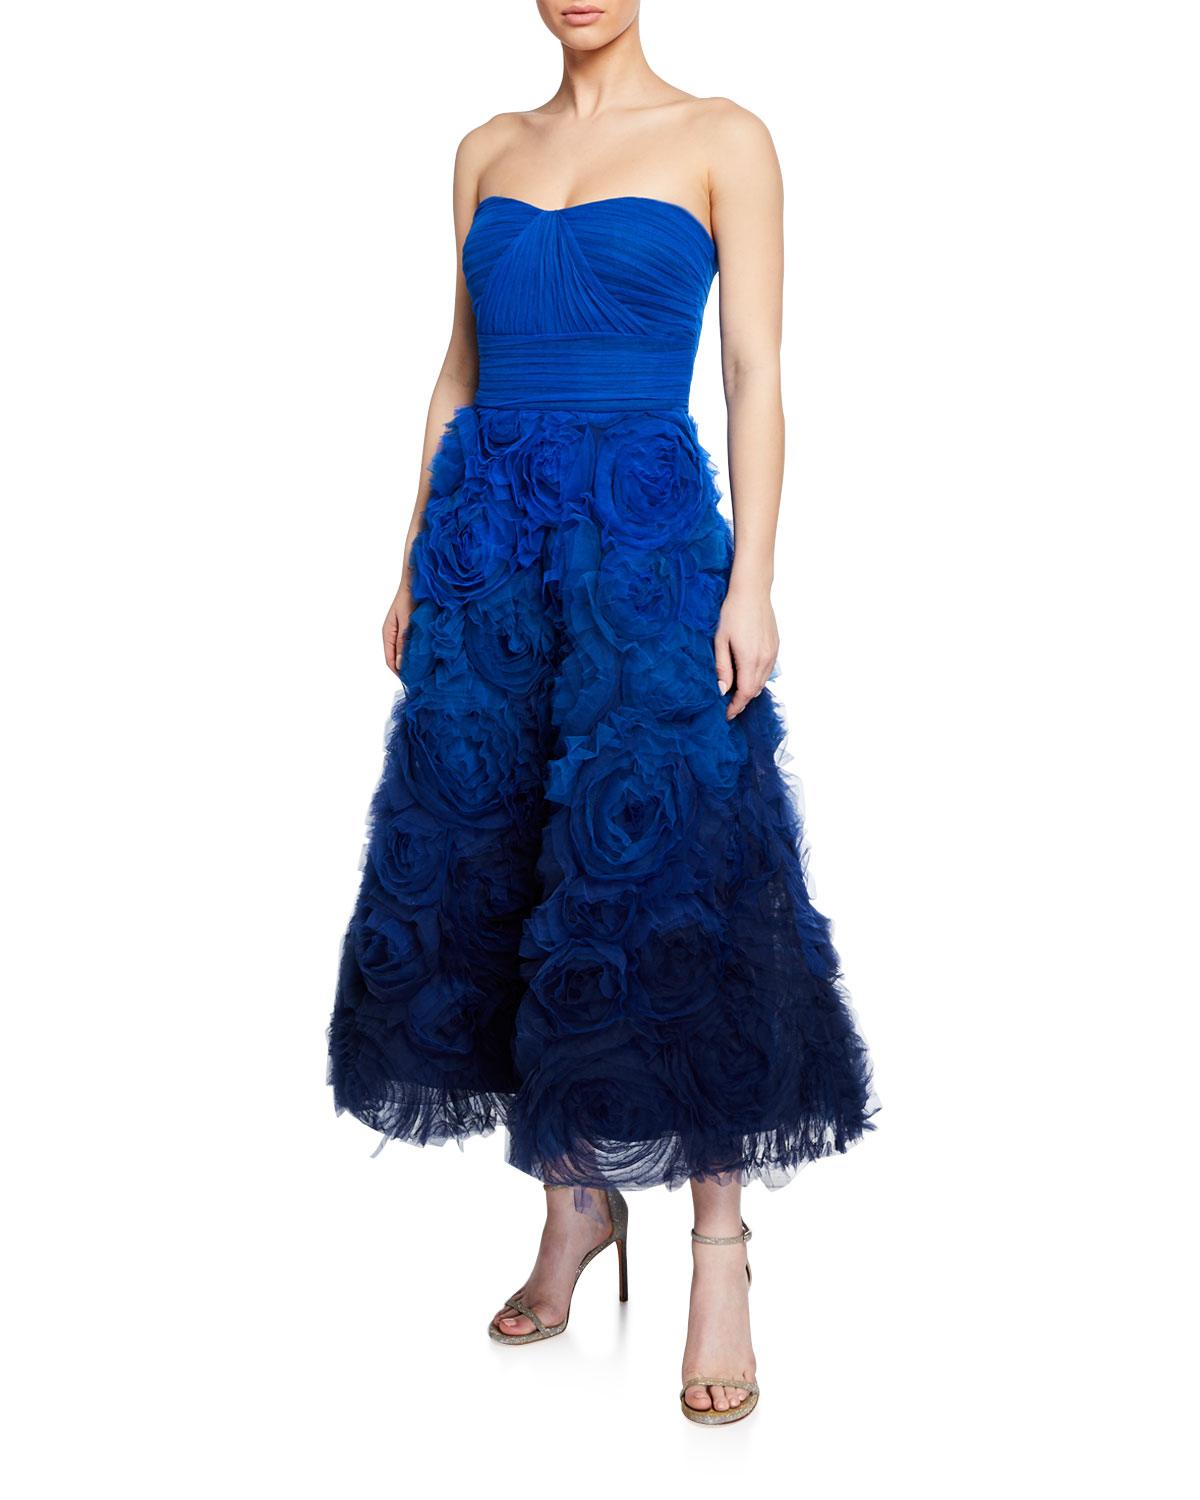 99c04205 Marchesa Notte Ombre Strapless Textured Tulle Gown with Draped Bodice